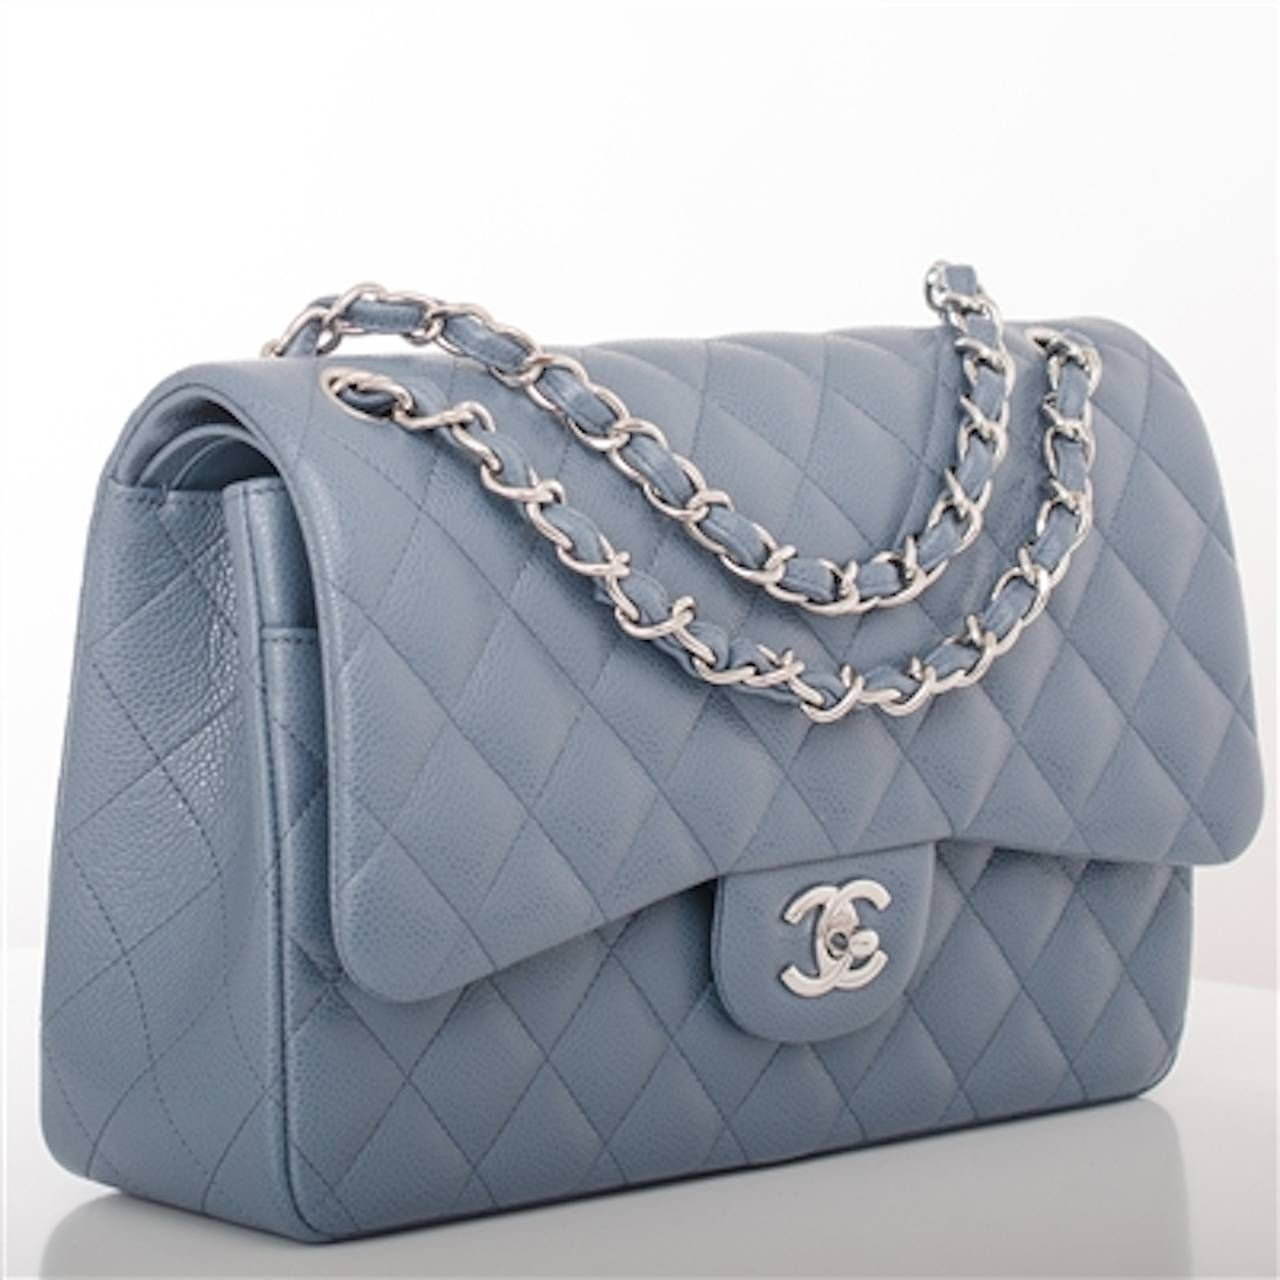 985a63a0c6ef Chanel Blue Quilted Caviar Jumbo Classic 2.55 Double Flap Bag ...